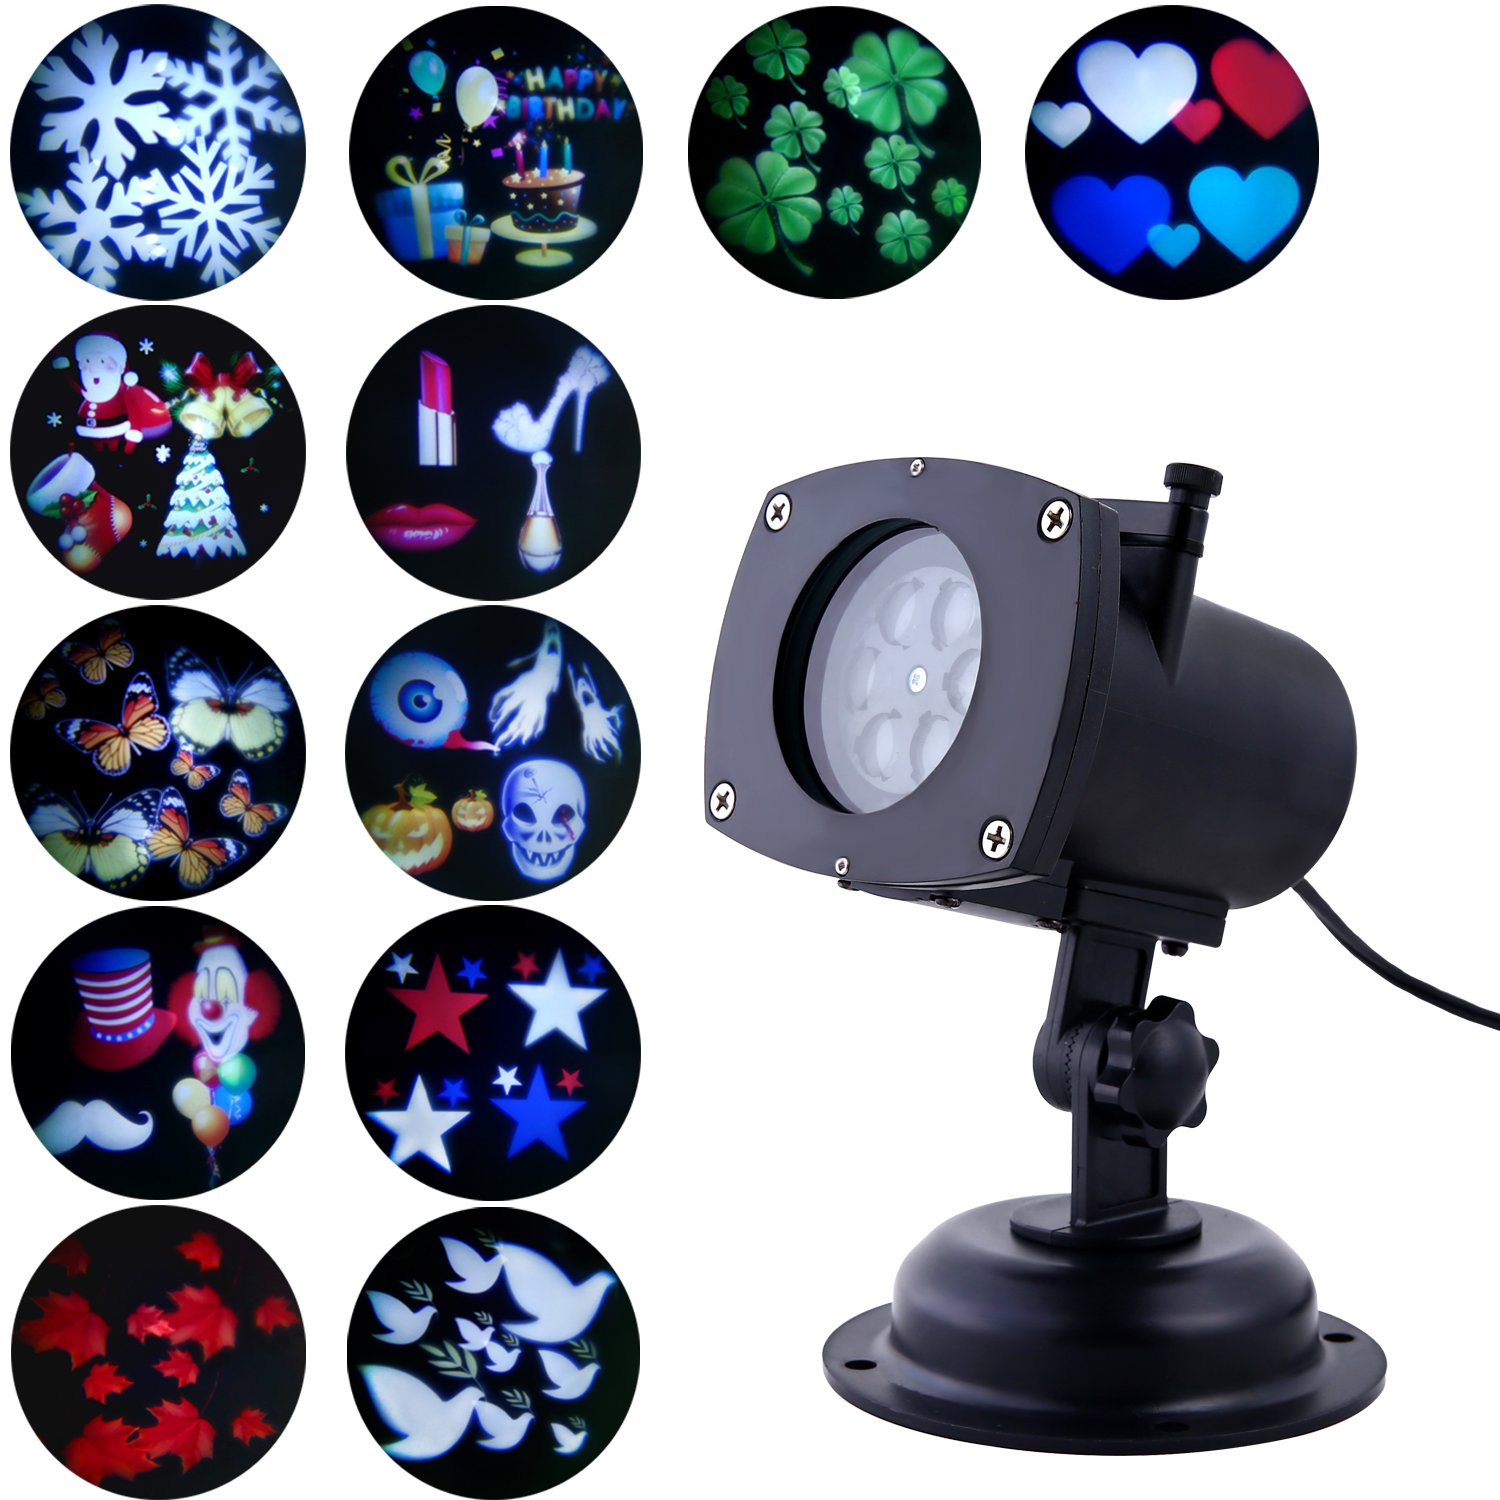 Projector Lights, Oxyled LED Party Projection Lamp, Waterproof Color Projector Light with 12 Slides for Outdoor/Indoor Party, Christmas/Halloween/Girls' Night, Holiday Decorations